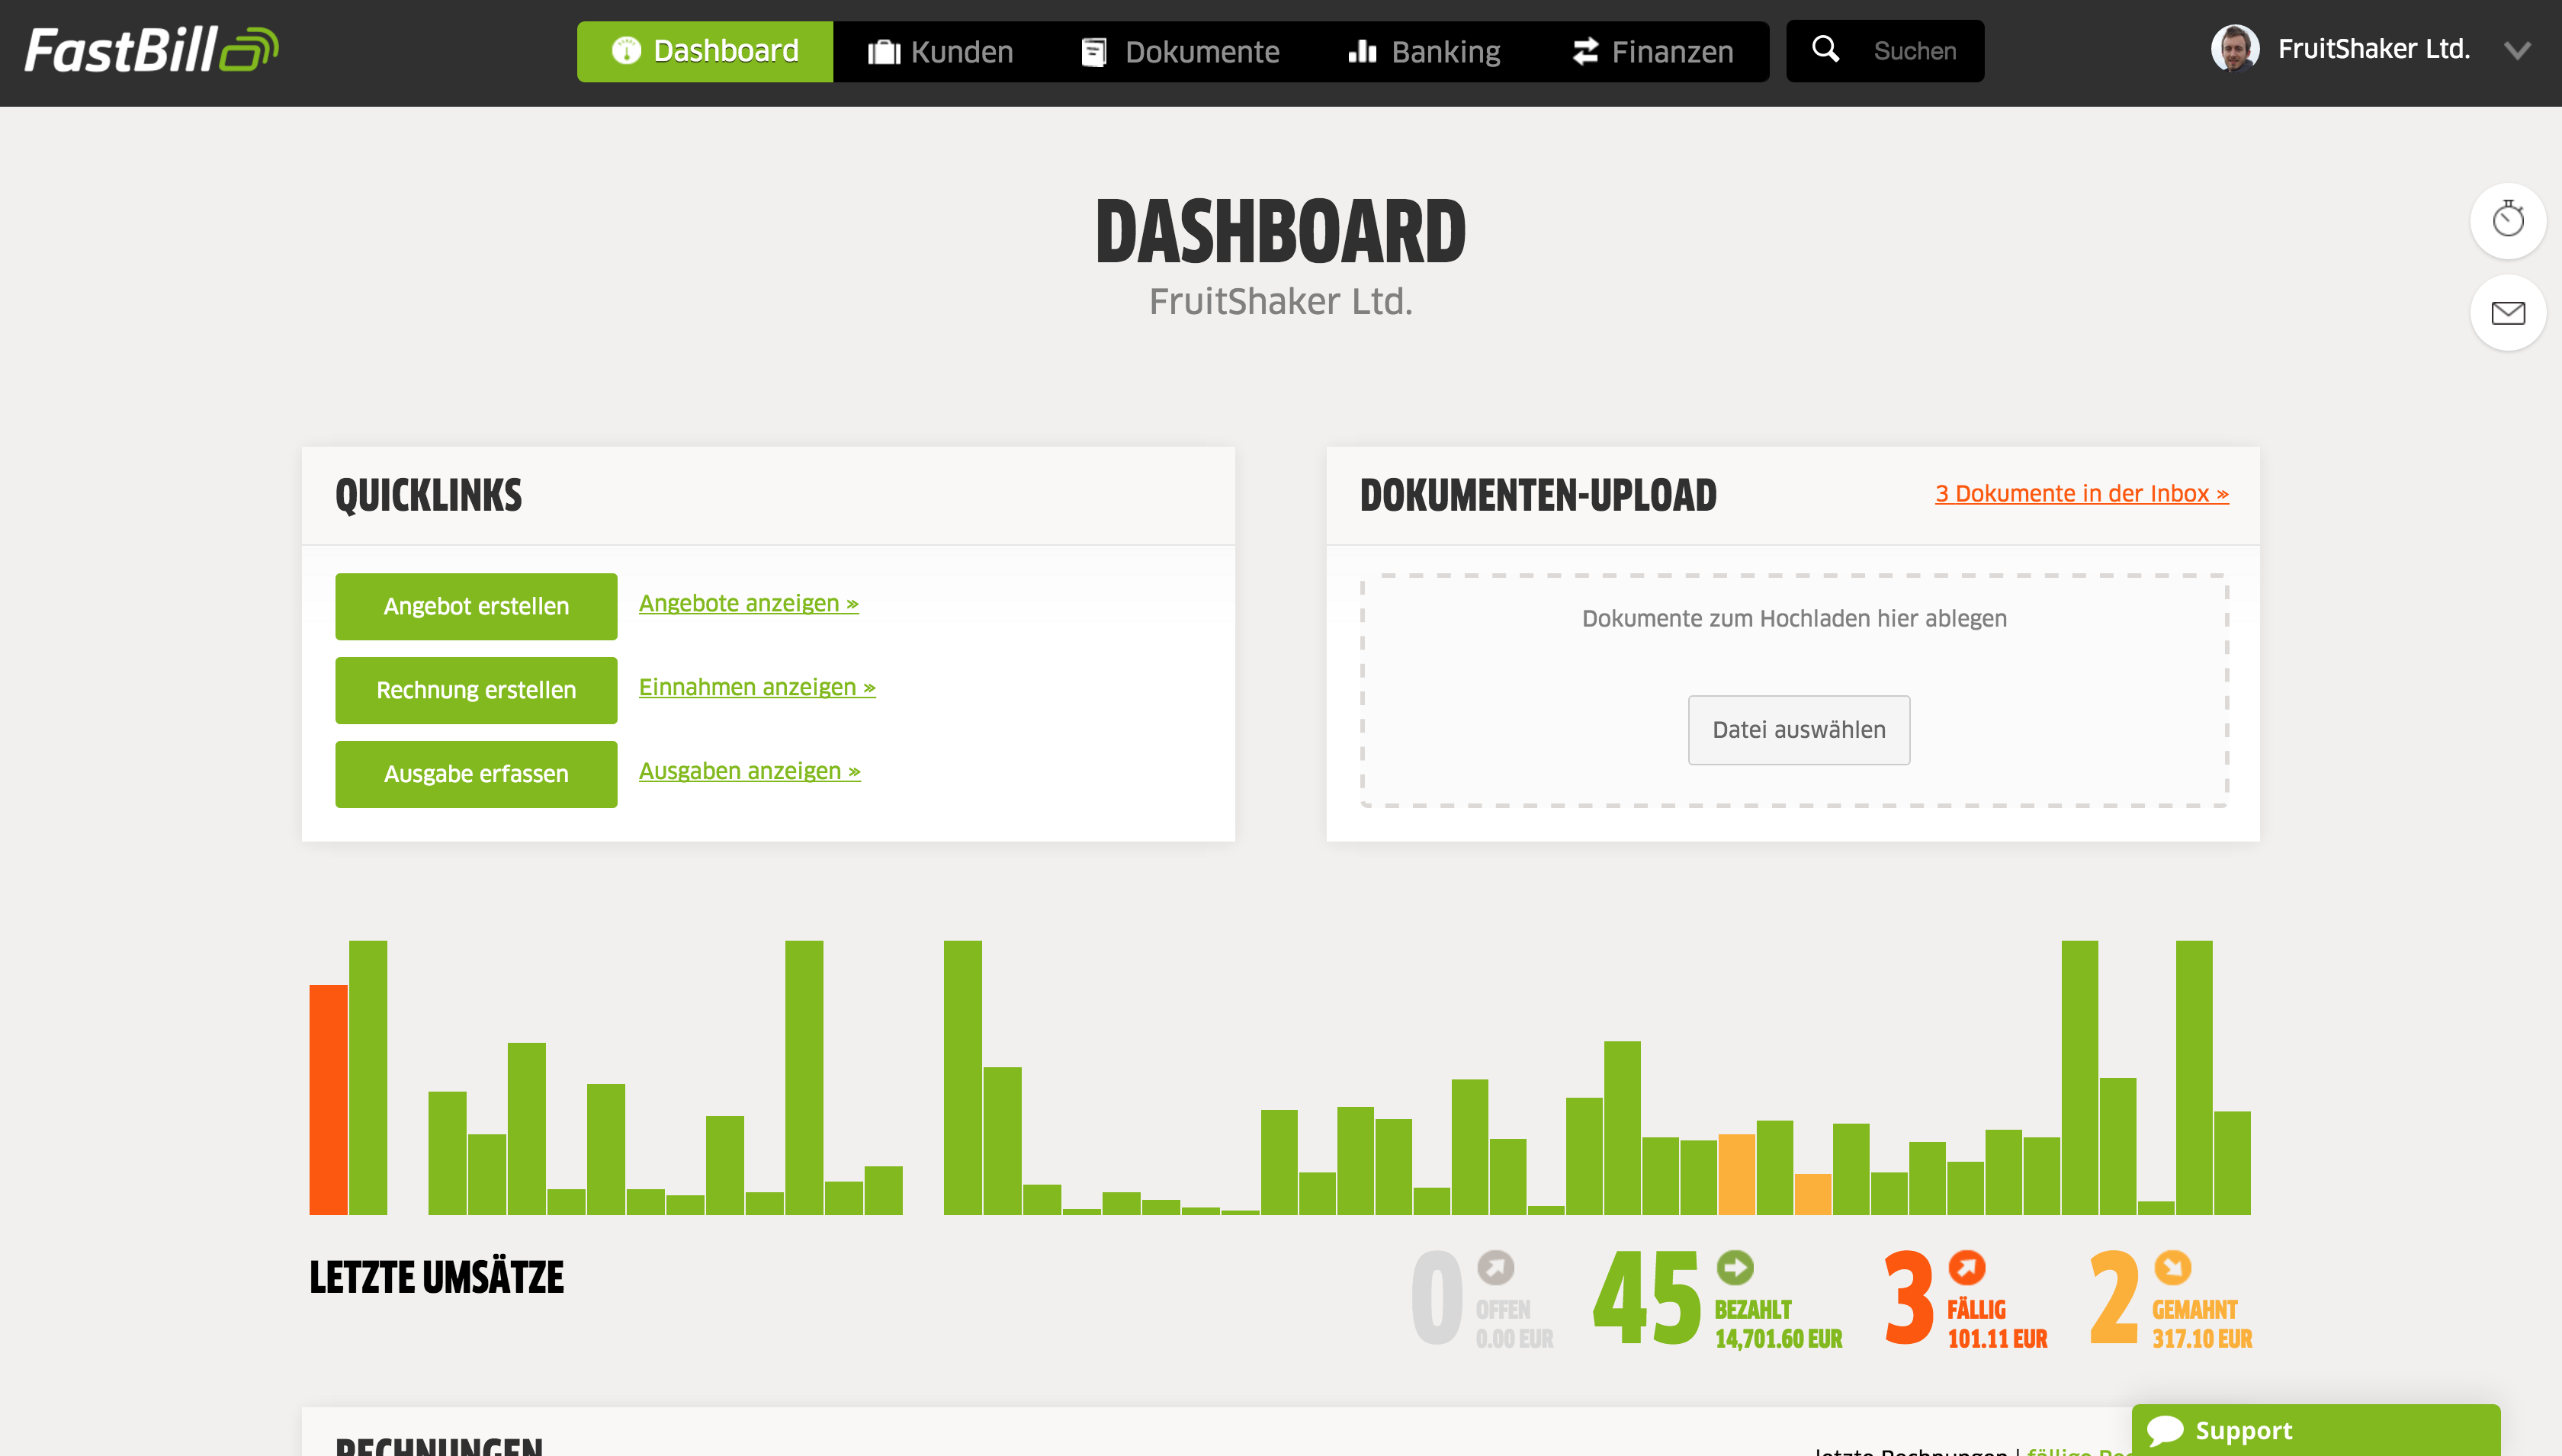 FastBill - Dashboard